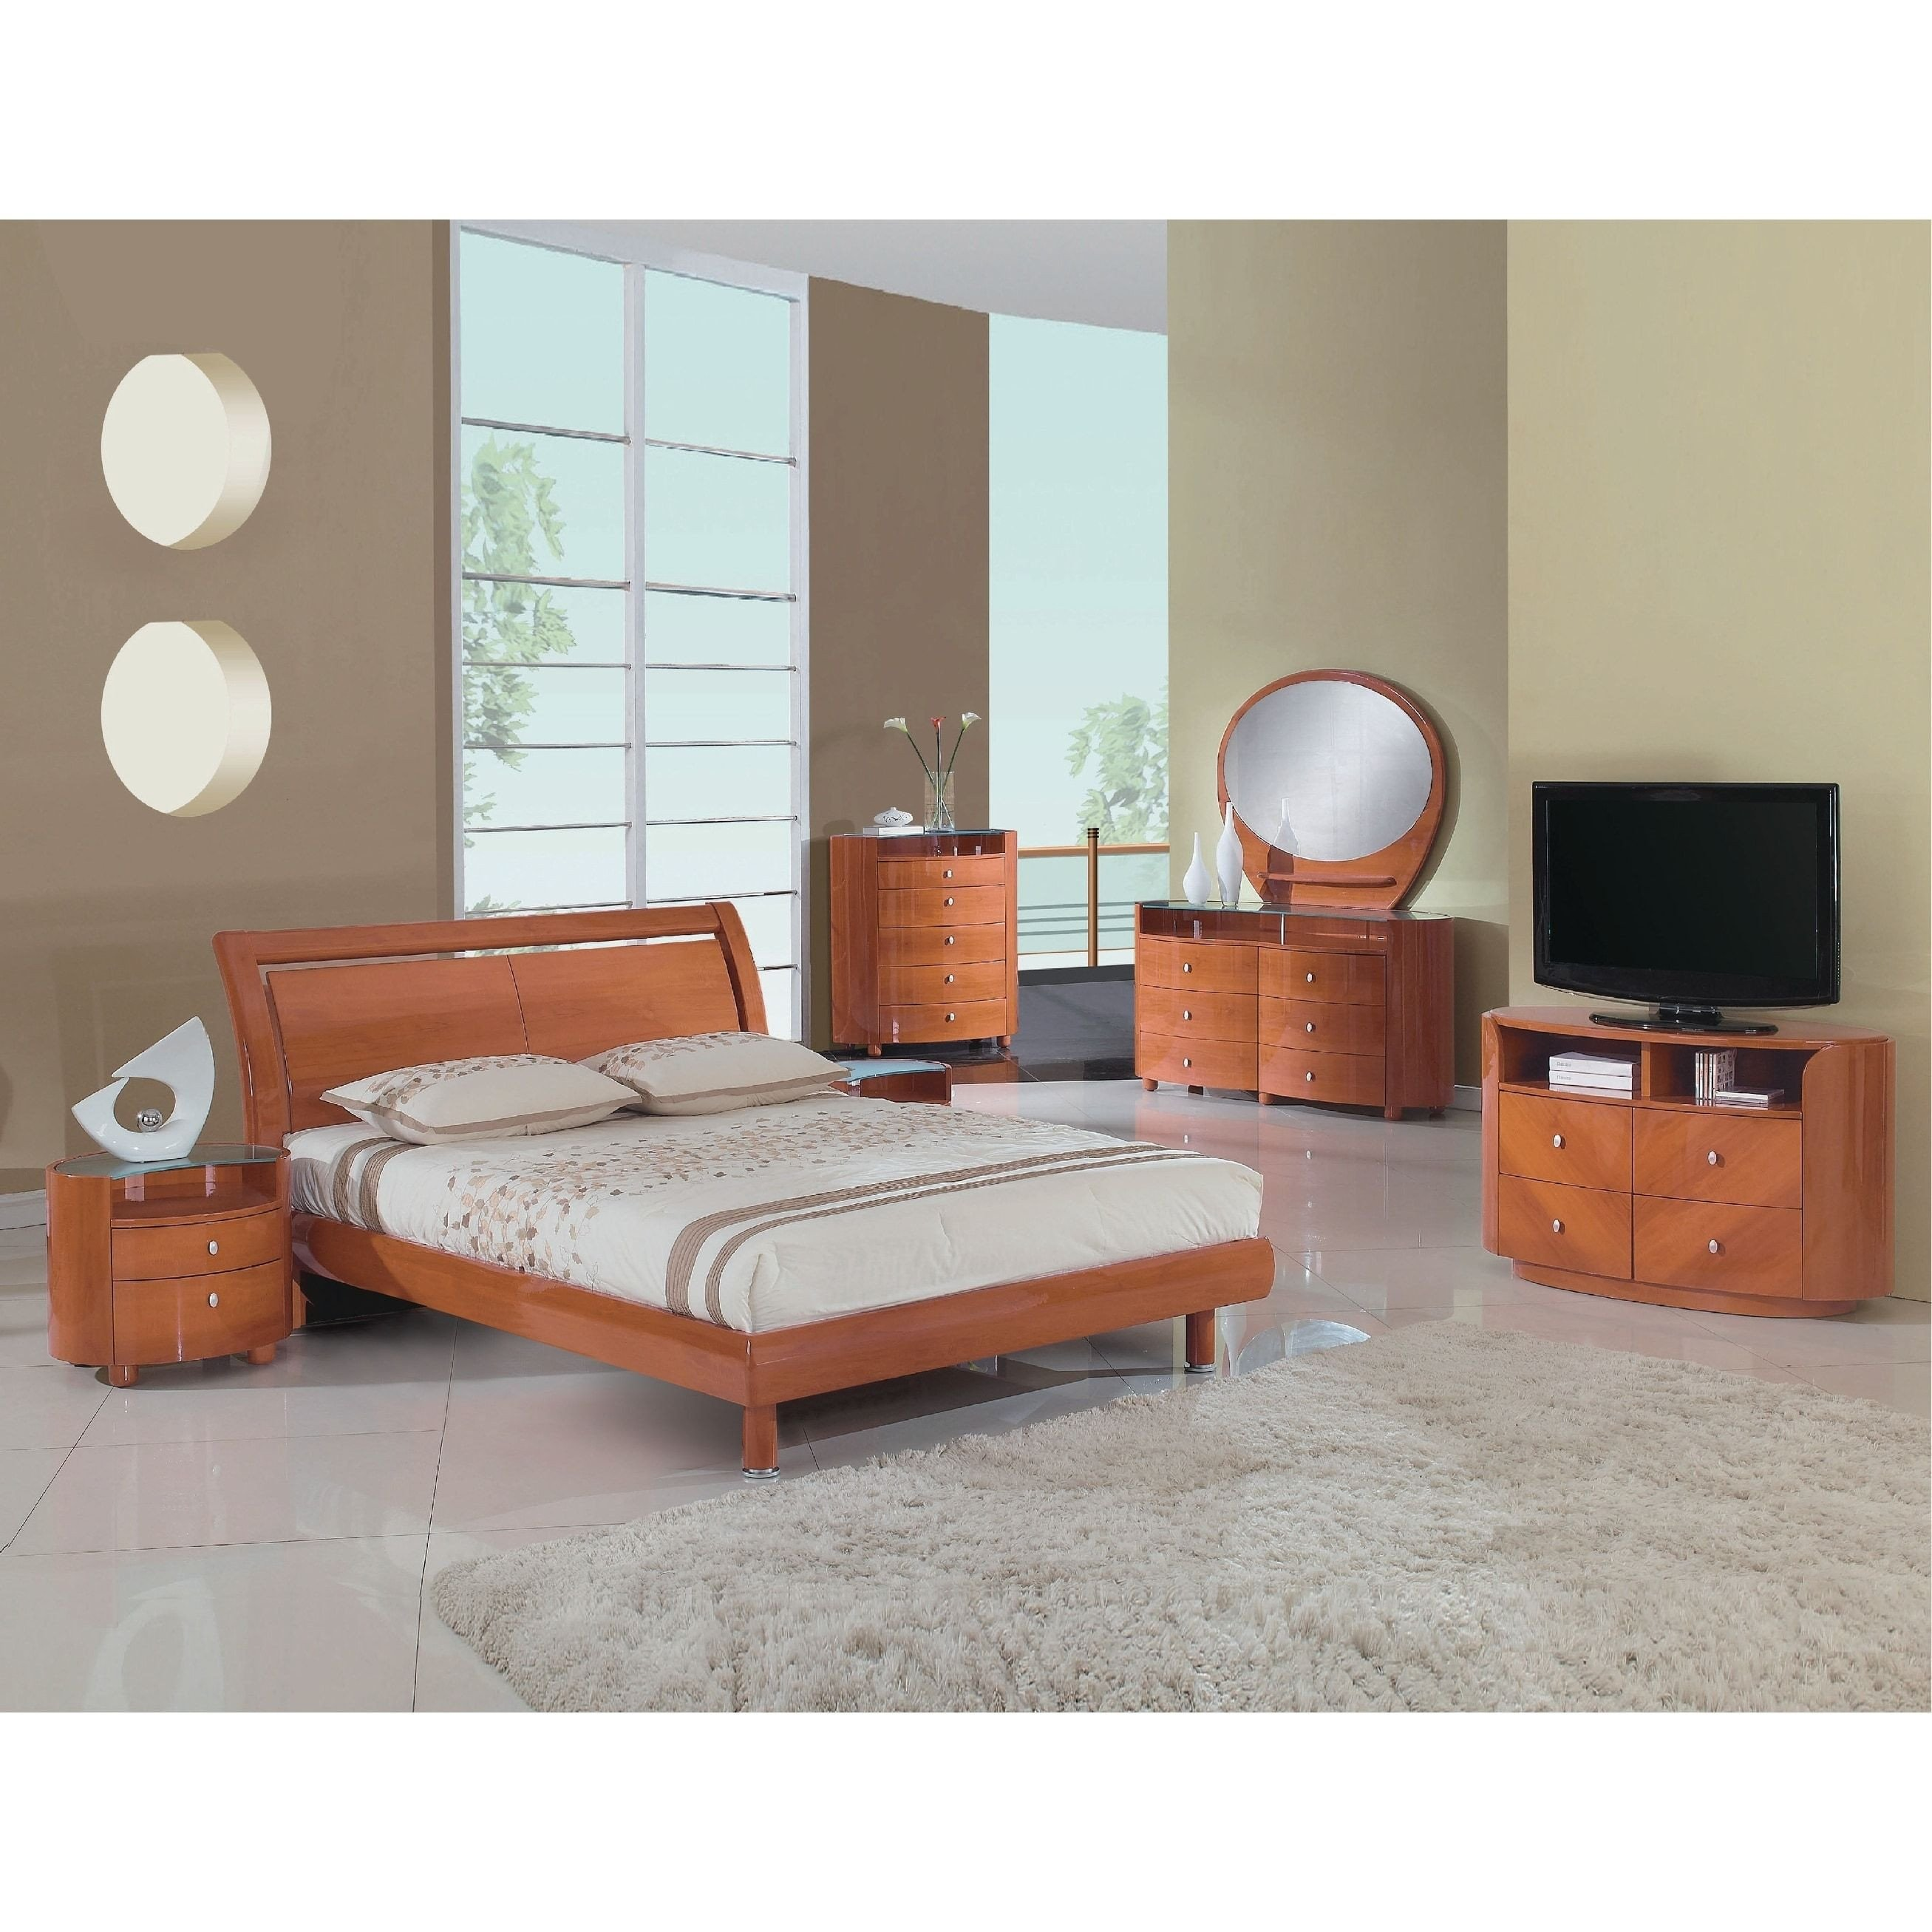 Bedroom Furniture for Cheap Luxury Line Shopping Bedding Furniture Electronics Jewelry